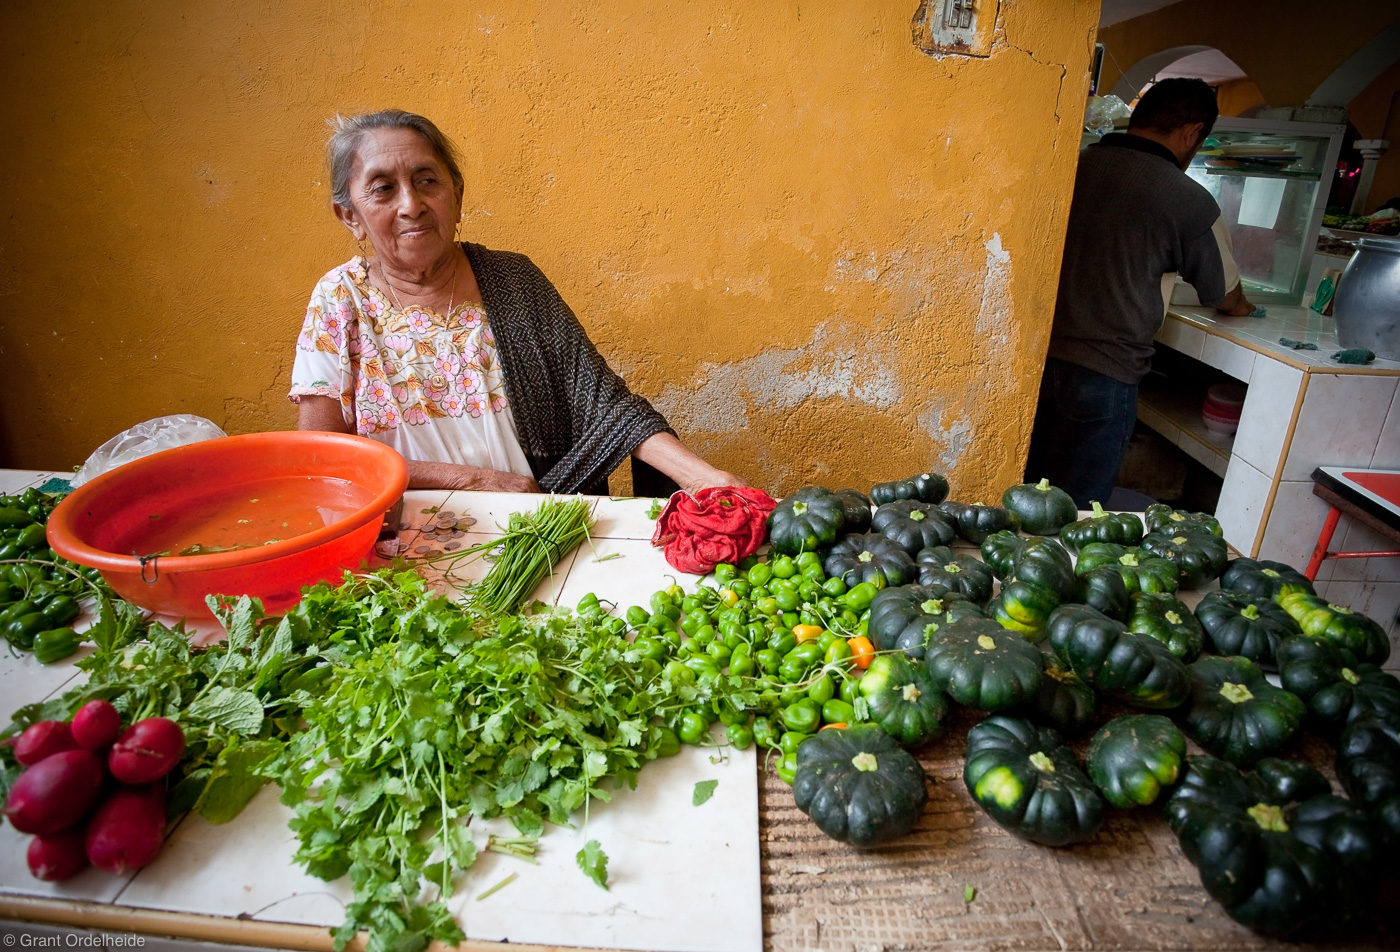 woman, vegetables, izamal, yucatan, mexico, town market, chops, photo